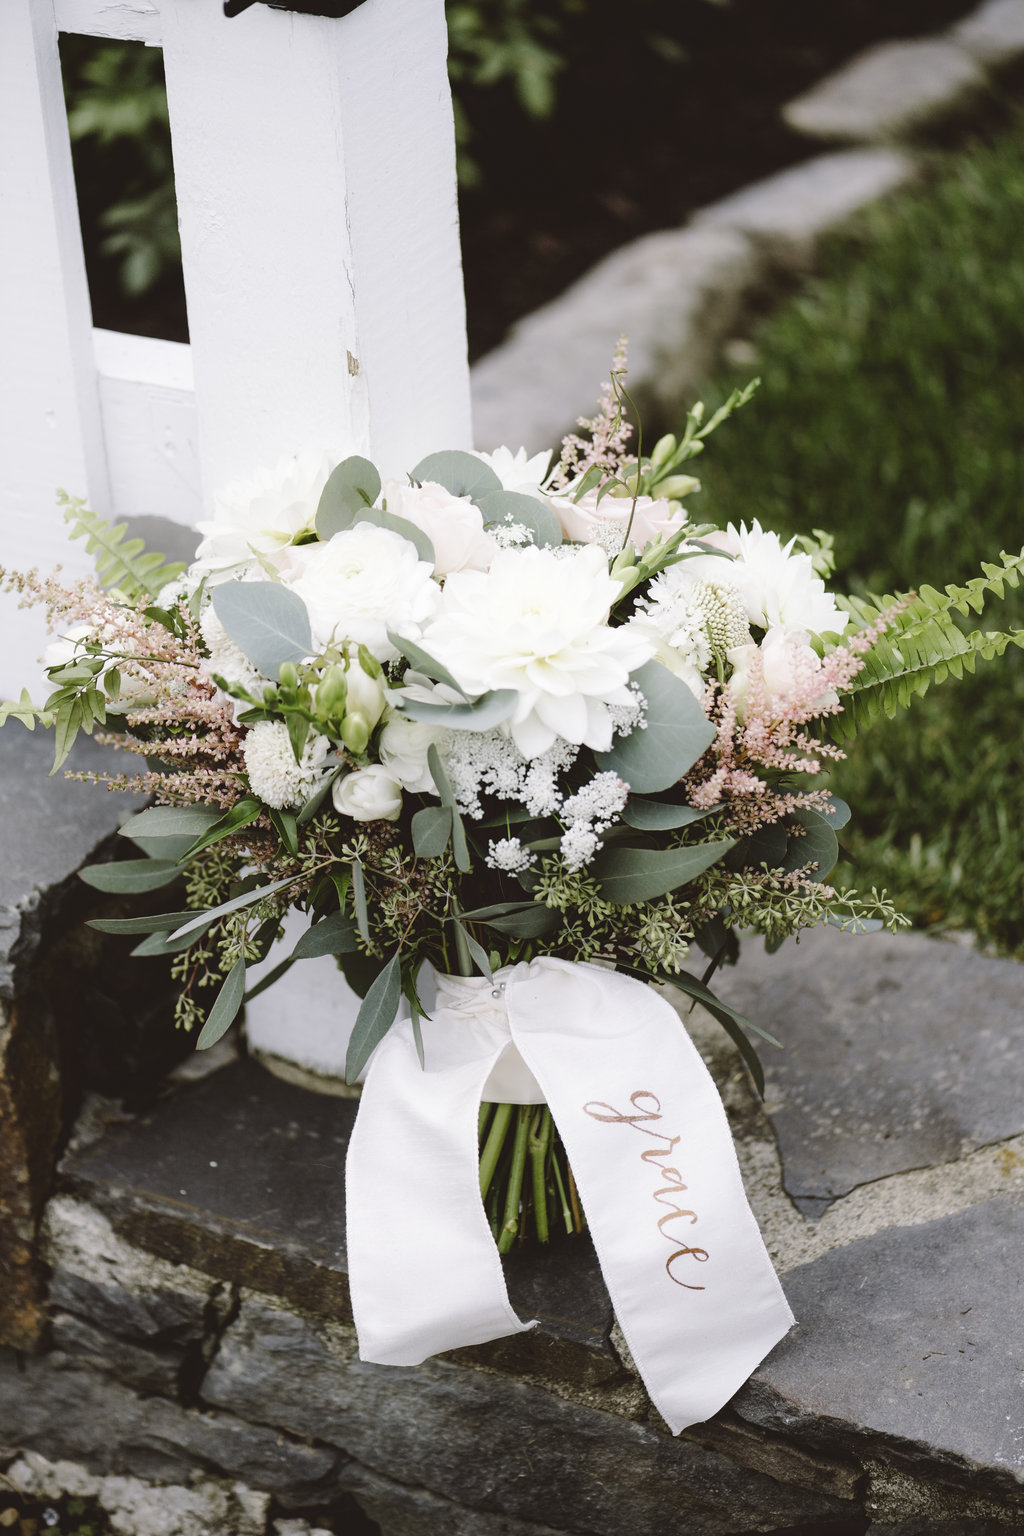 Coppola Creative Wedding Design _ Alicia King Photo2.jpg